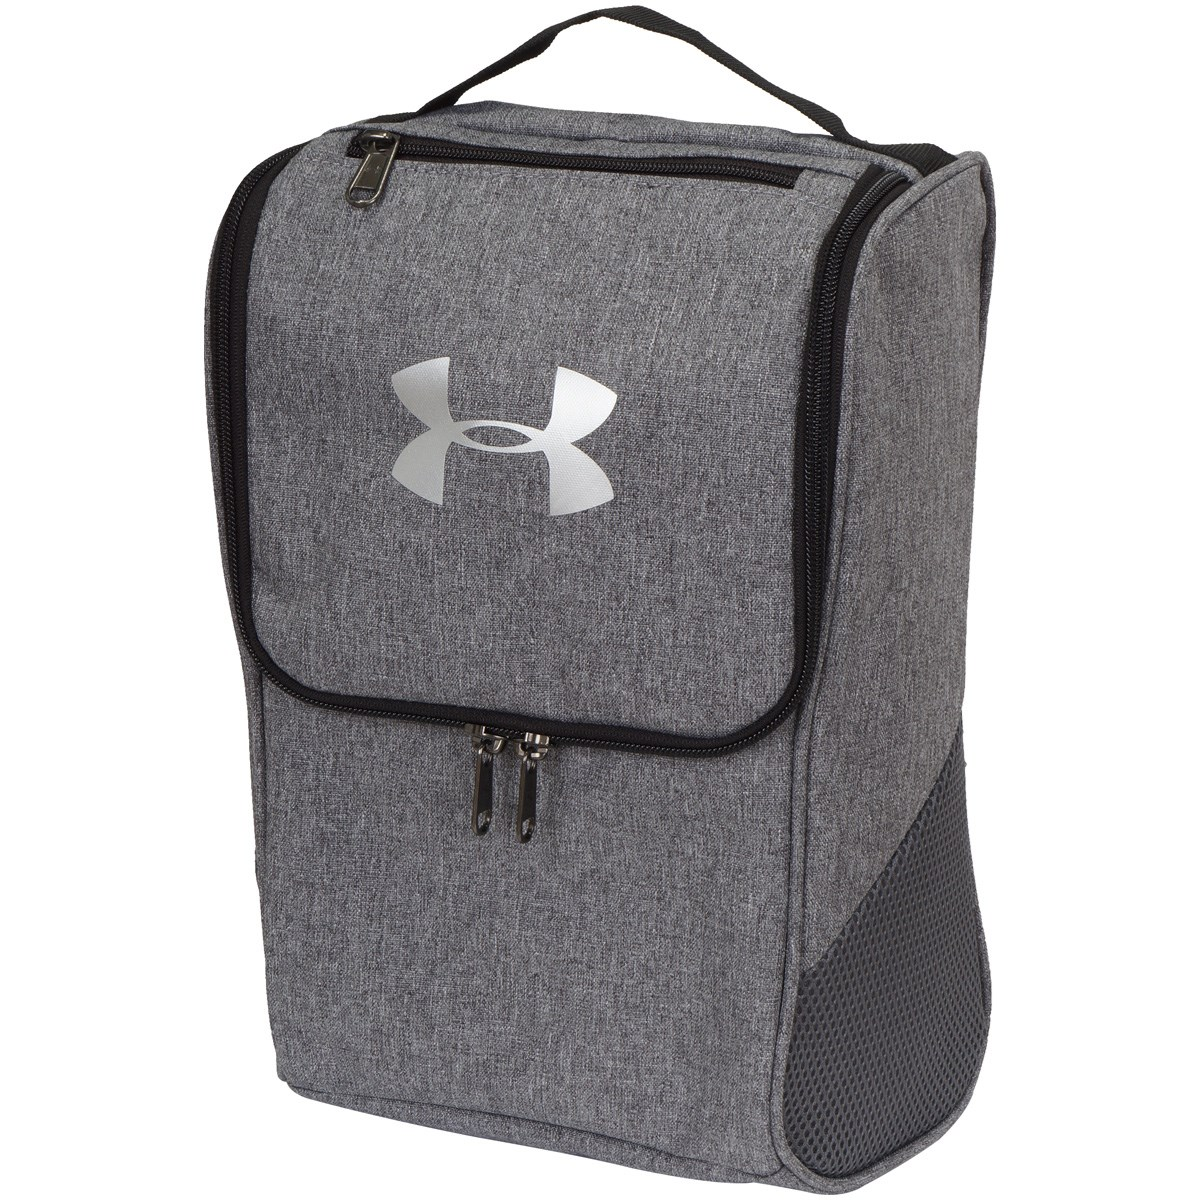 アンダーアーマー Under Armour UA シューズケース GRAPHITE MEDIUM HEATHER/GRAPHITE/SILVER